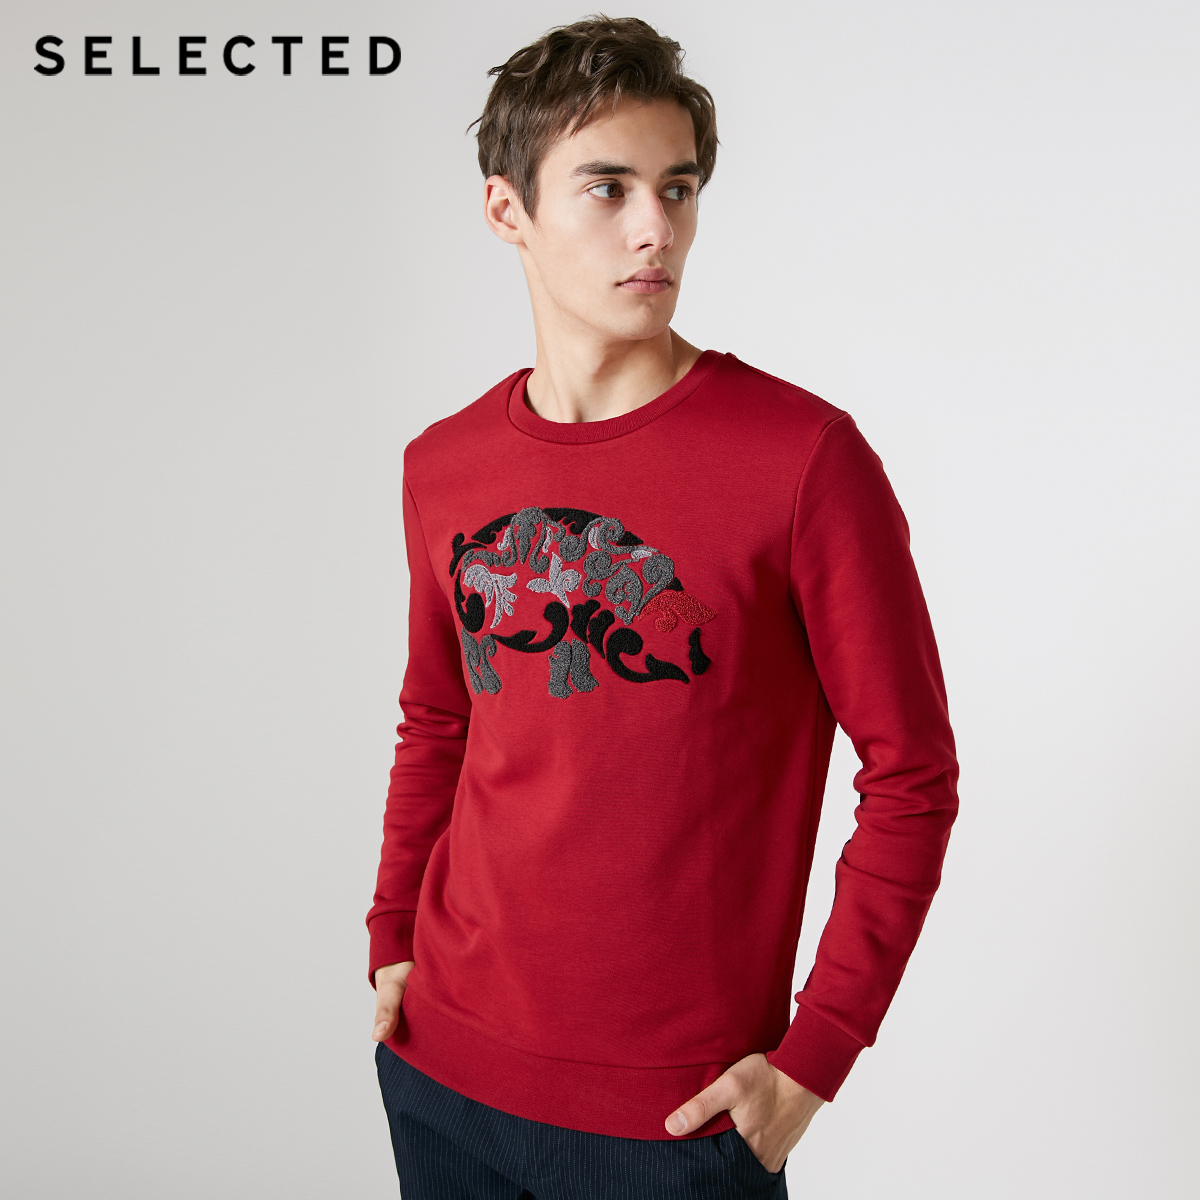 SELECTED Men's Cotton-blend Cartoon Pig Print Knitted Tops S|41914D533